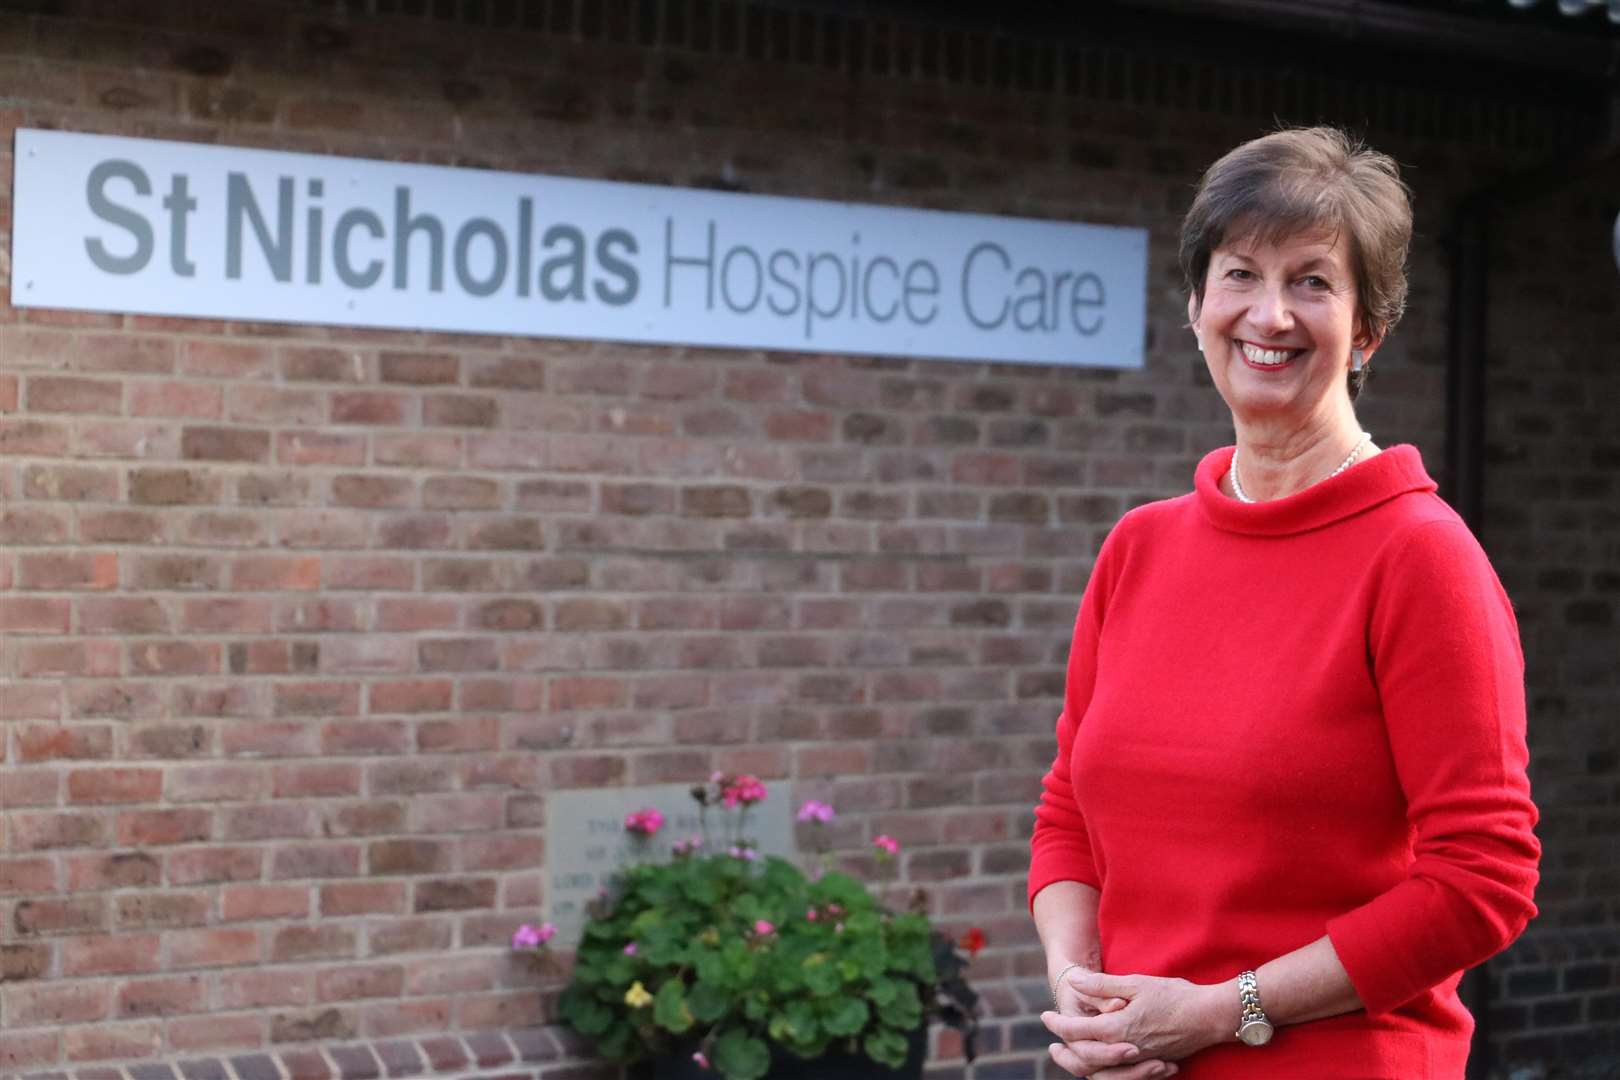 Barbara Gale, chief executive of St Nicholas Hospice Care, awardedan MBE in recognition of her services to hospice care and the West Suffolk community. (6173112)